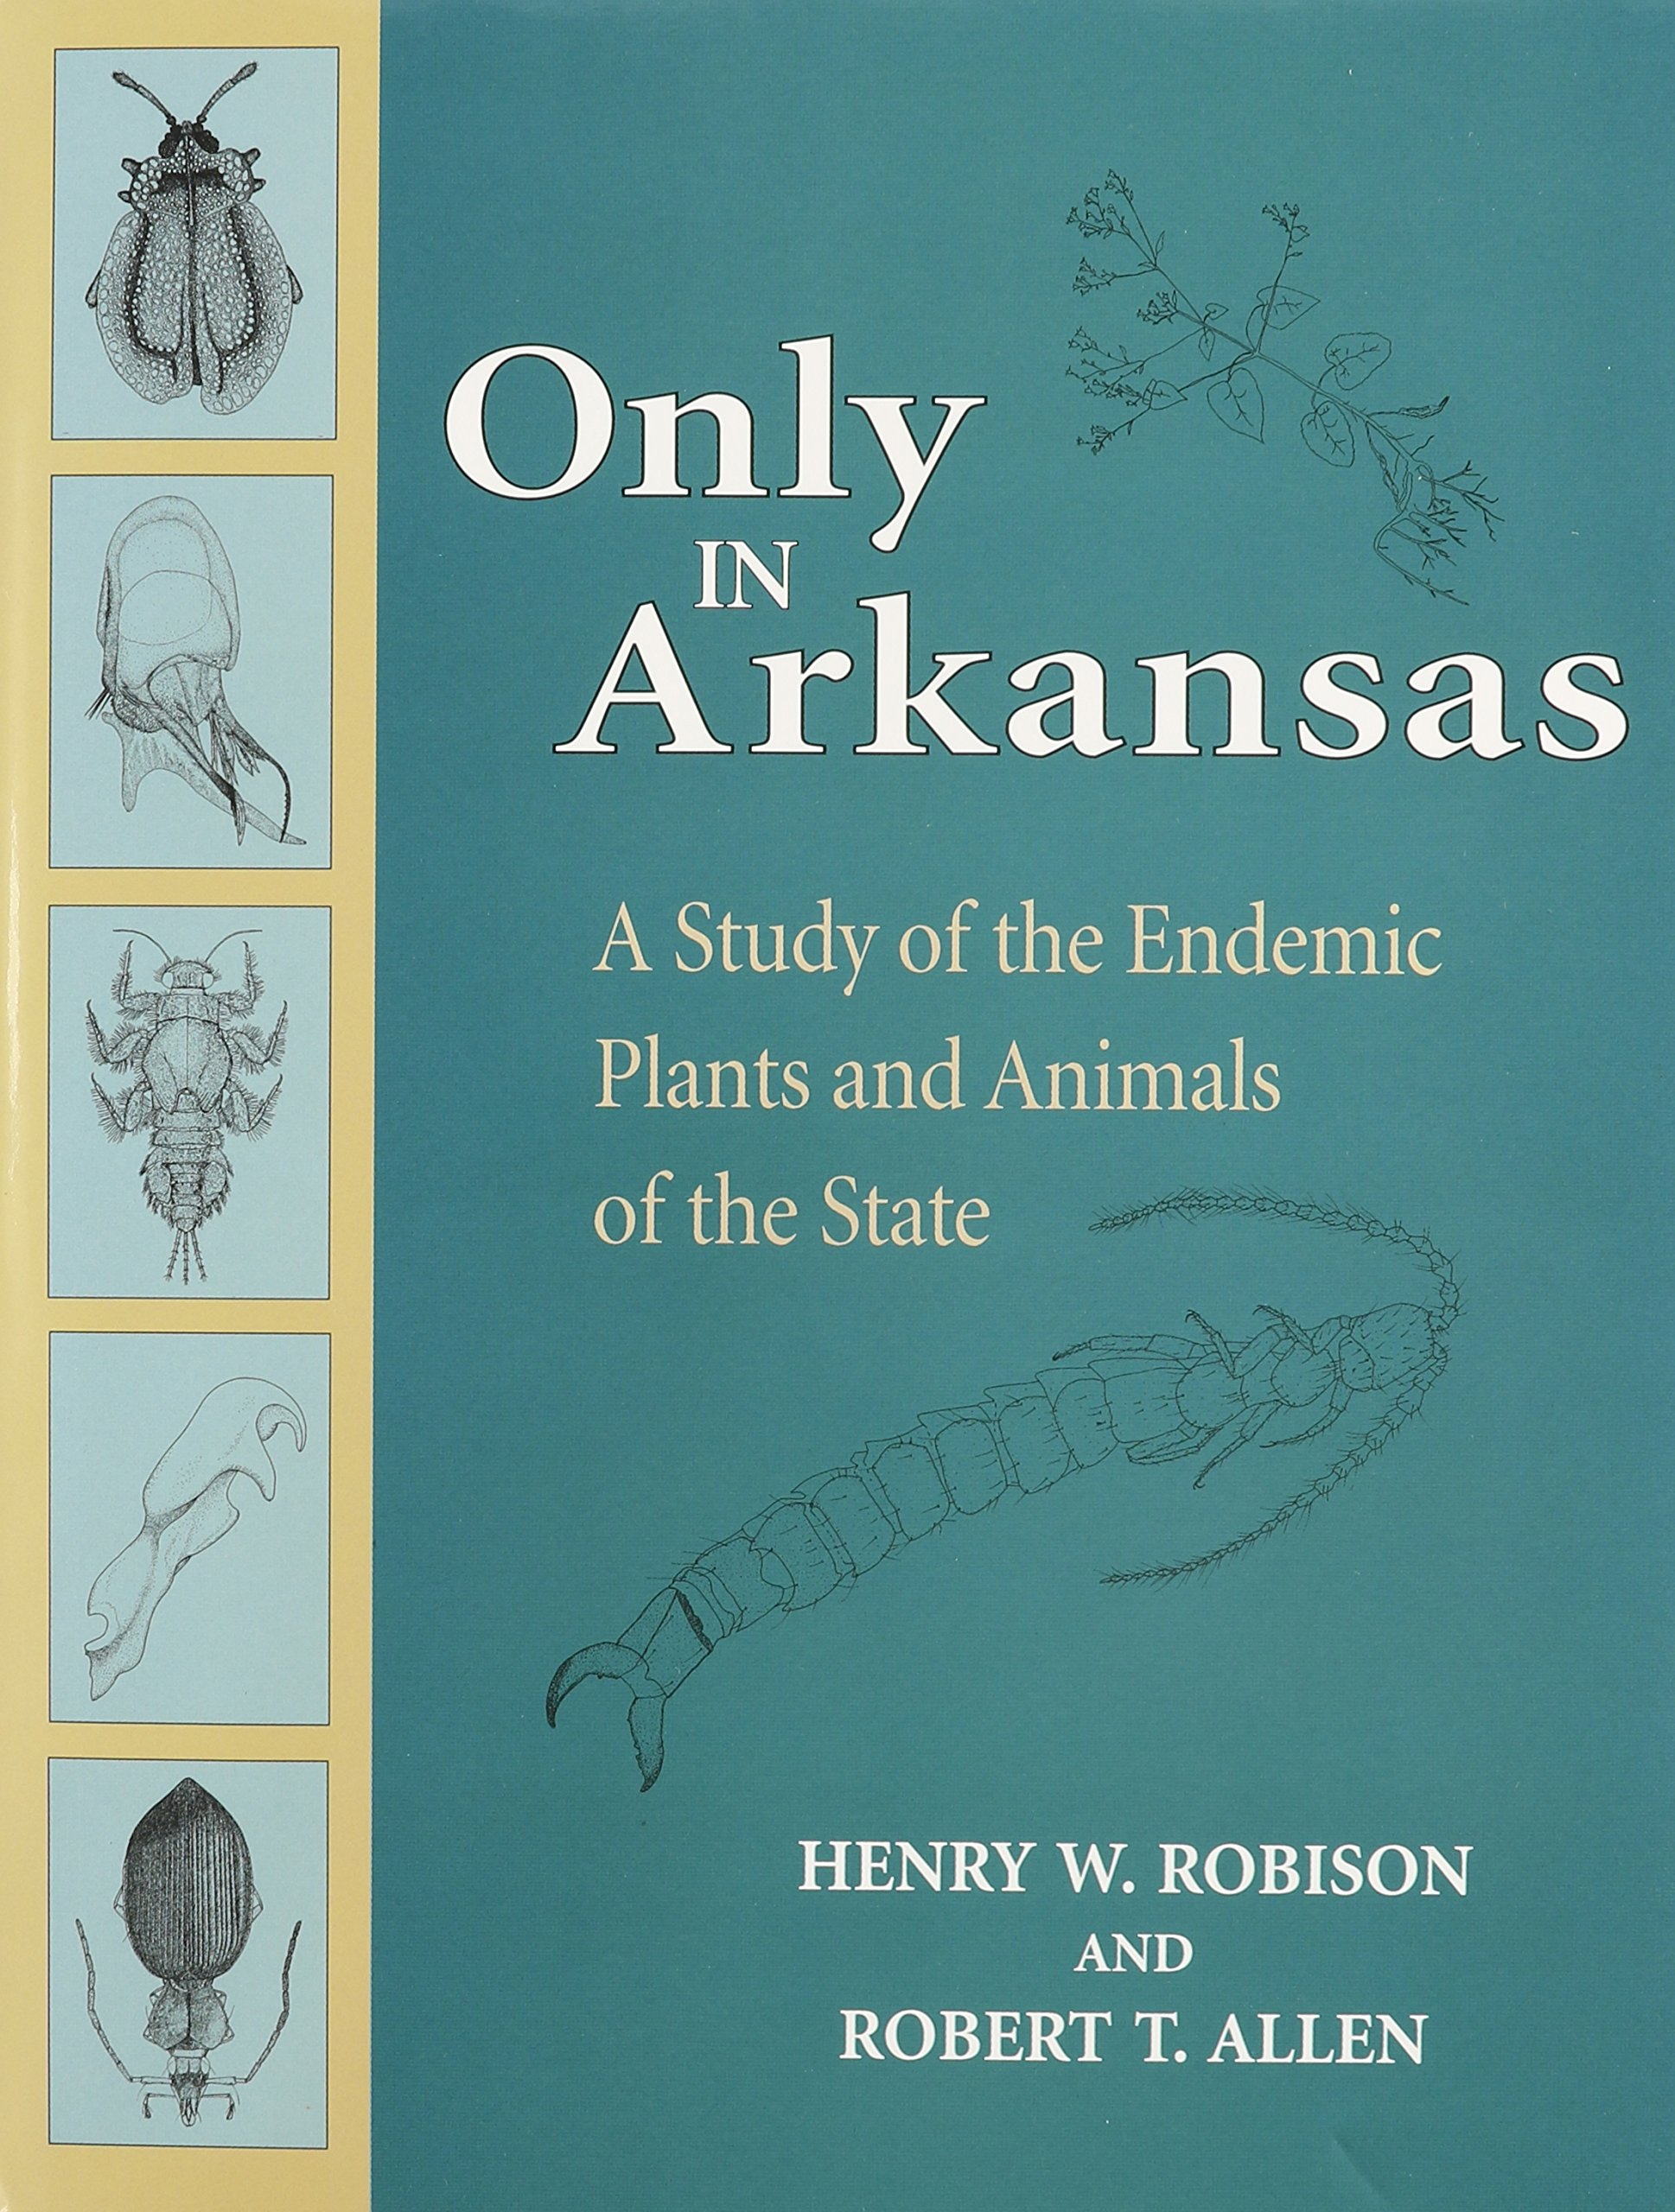 only-in-arkansas-a-study-of-the-endemic-plants-and-animals-of-the-state